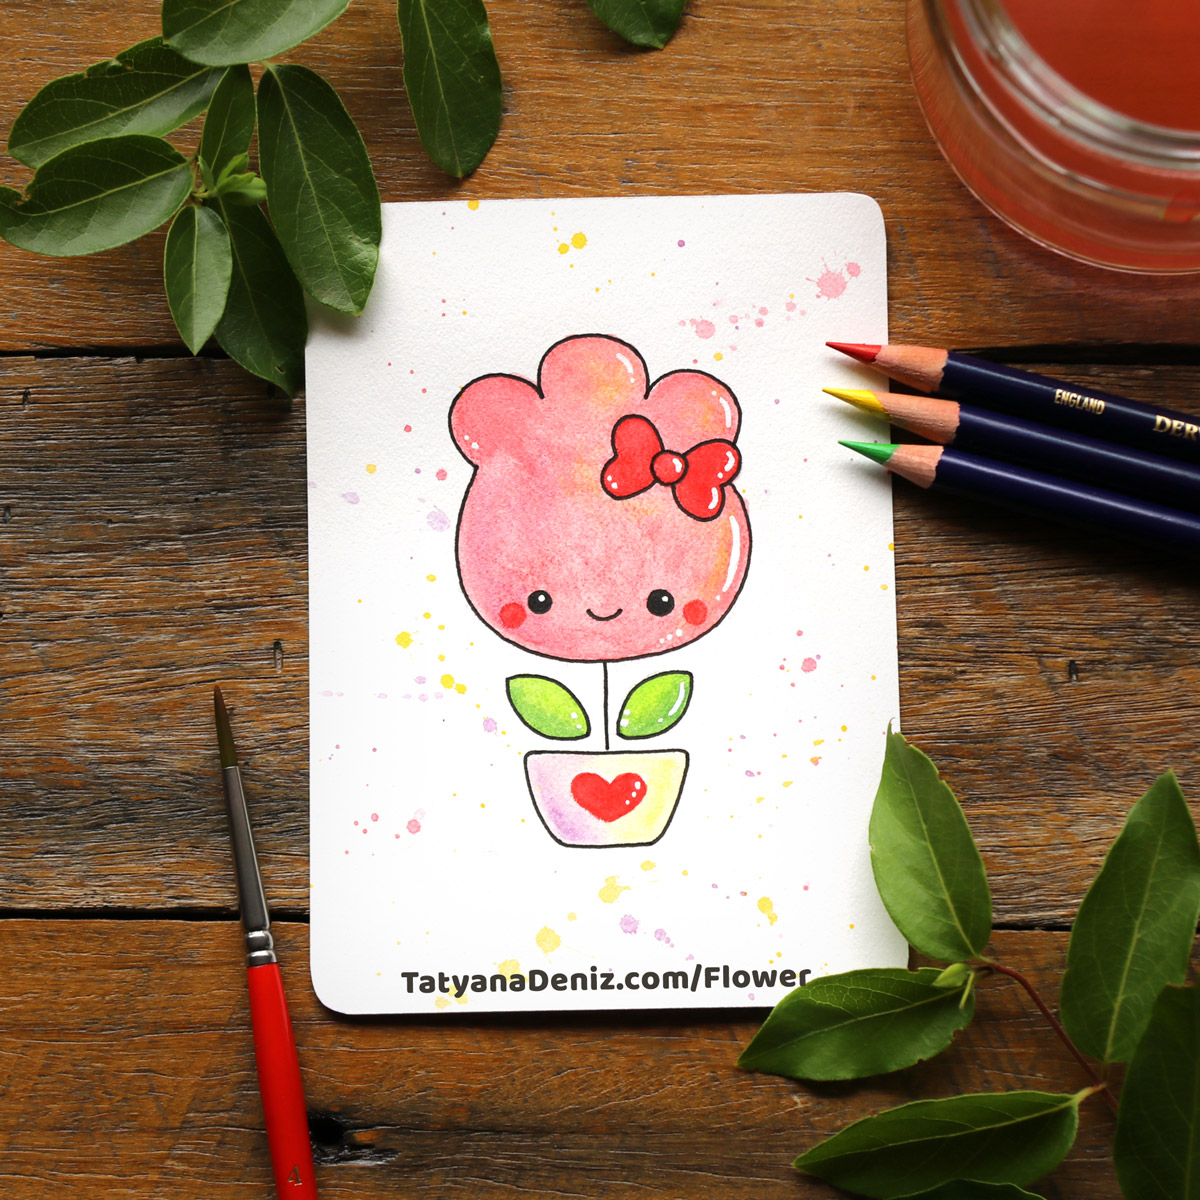 How to draw kawaii doodle flower for Valentine's Day